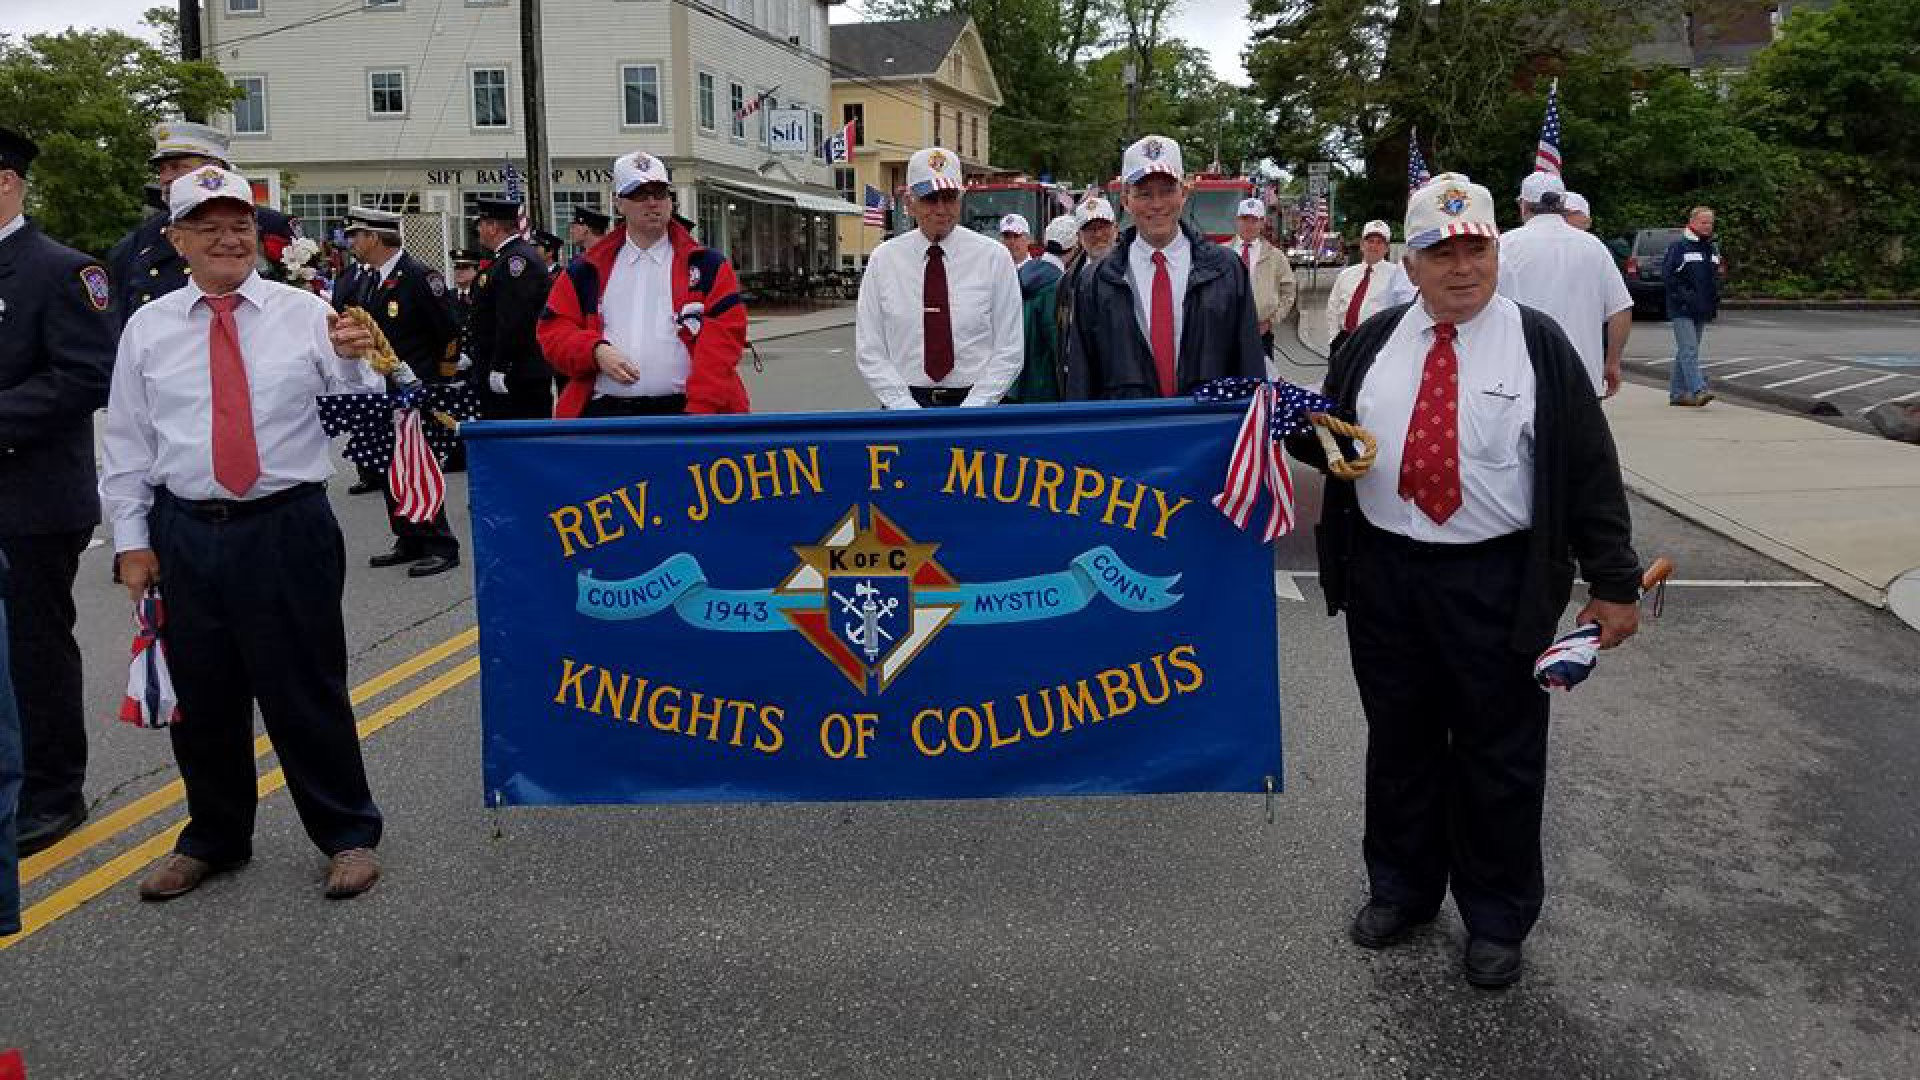 Knights of Columbus Mystic CT